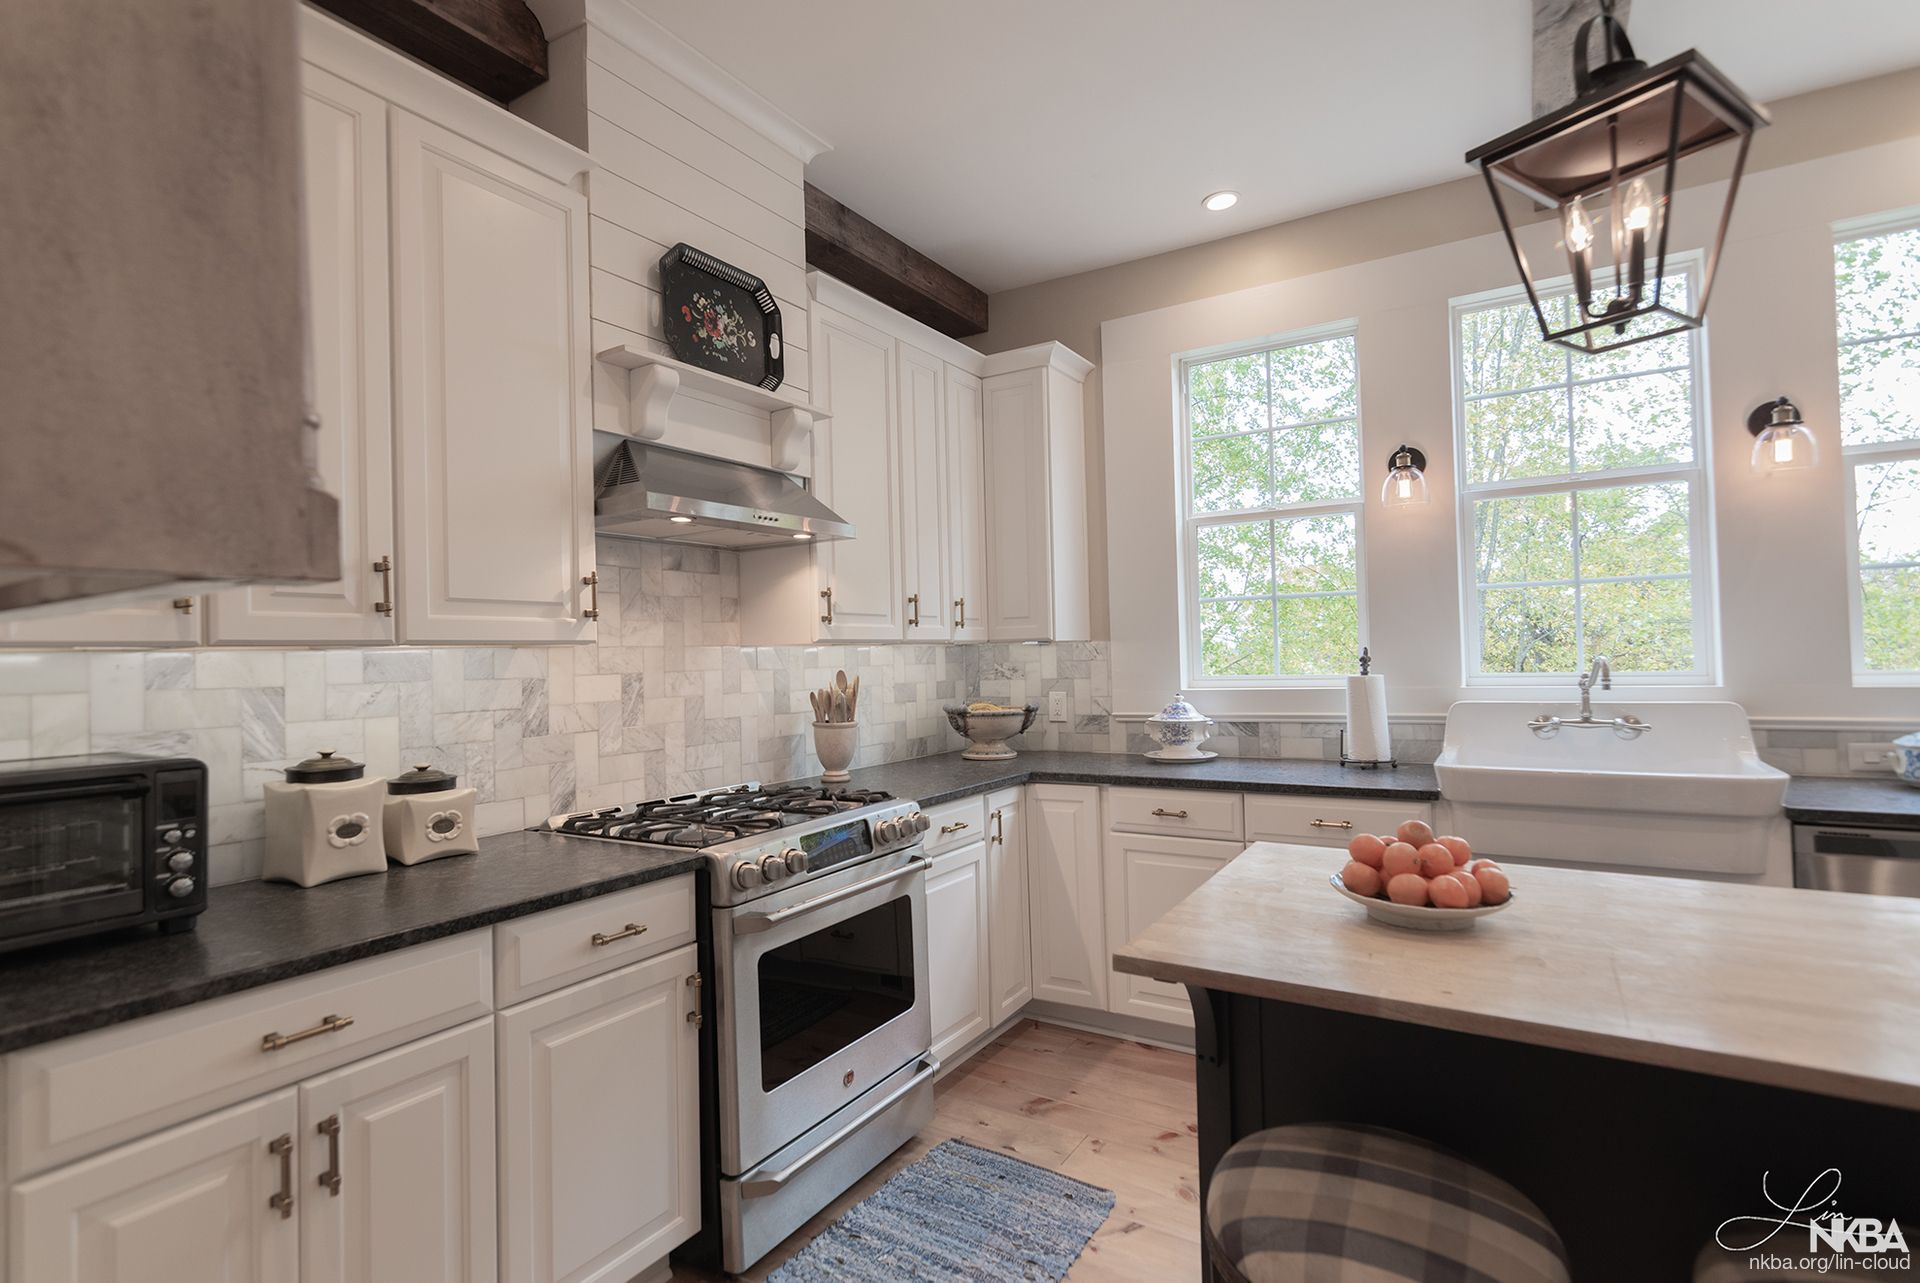 Bonner Nkba In 2020 Kitchen Farmhouse Kitchen Home Decor